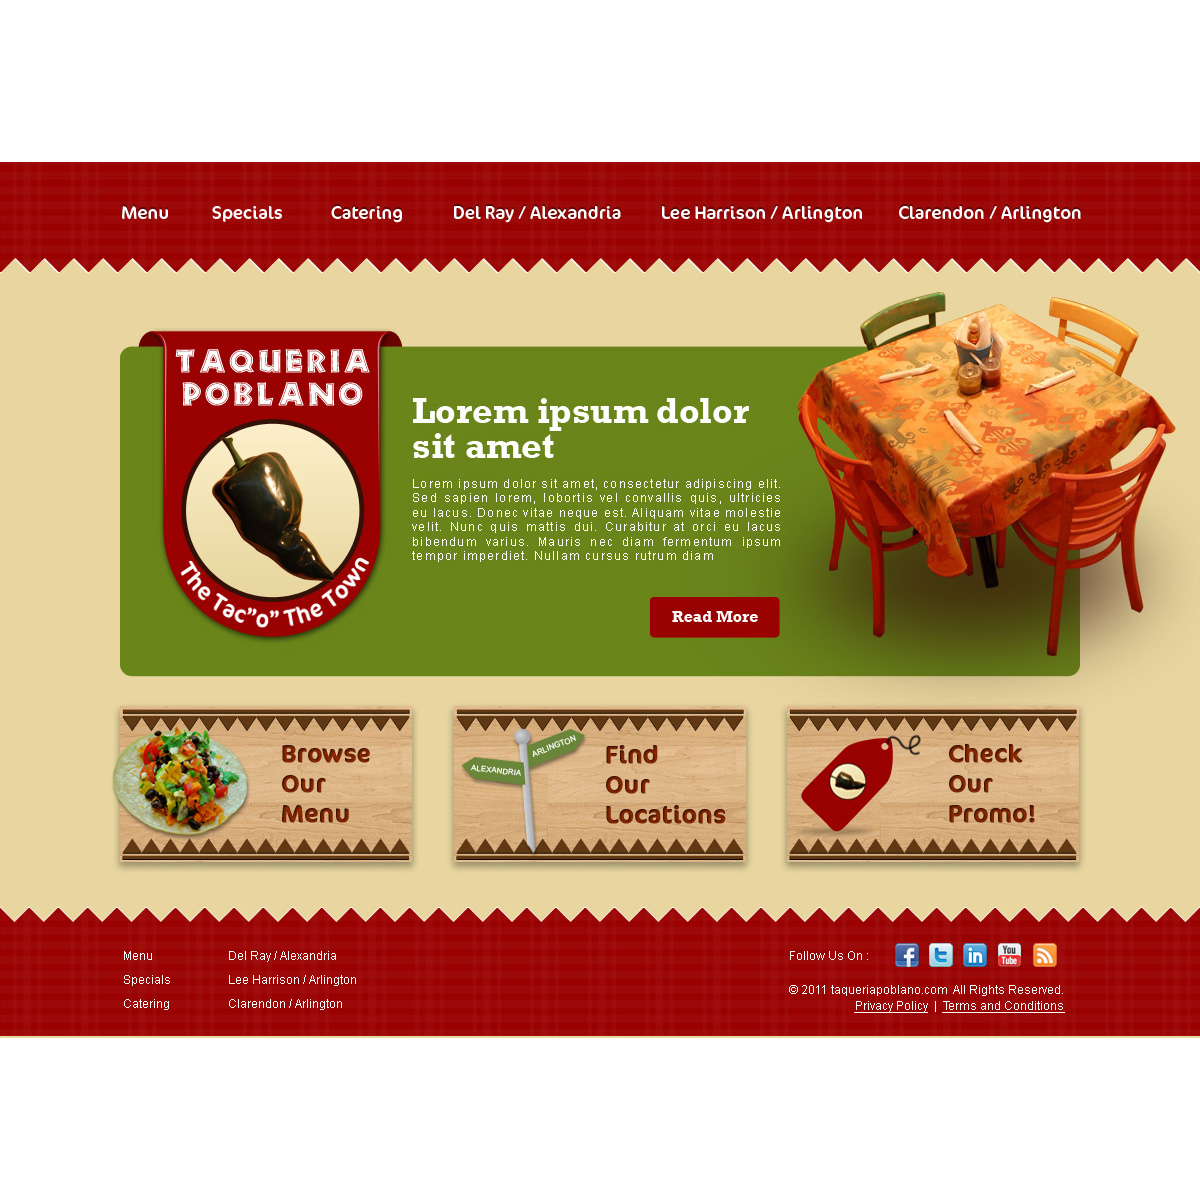 Web Page Design by suke - Entry No. 7 in the Web Page Design Contest New Web Page Design for Southwestern restaurant.